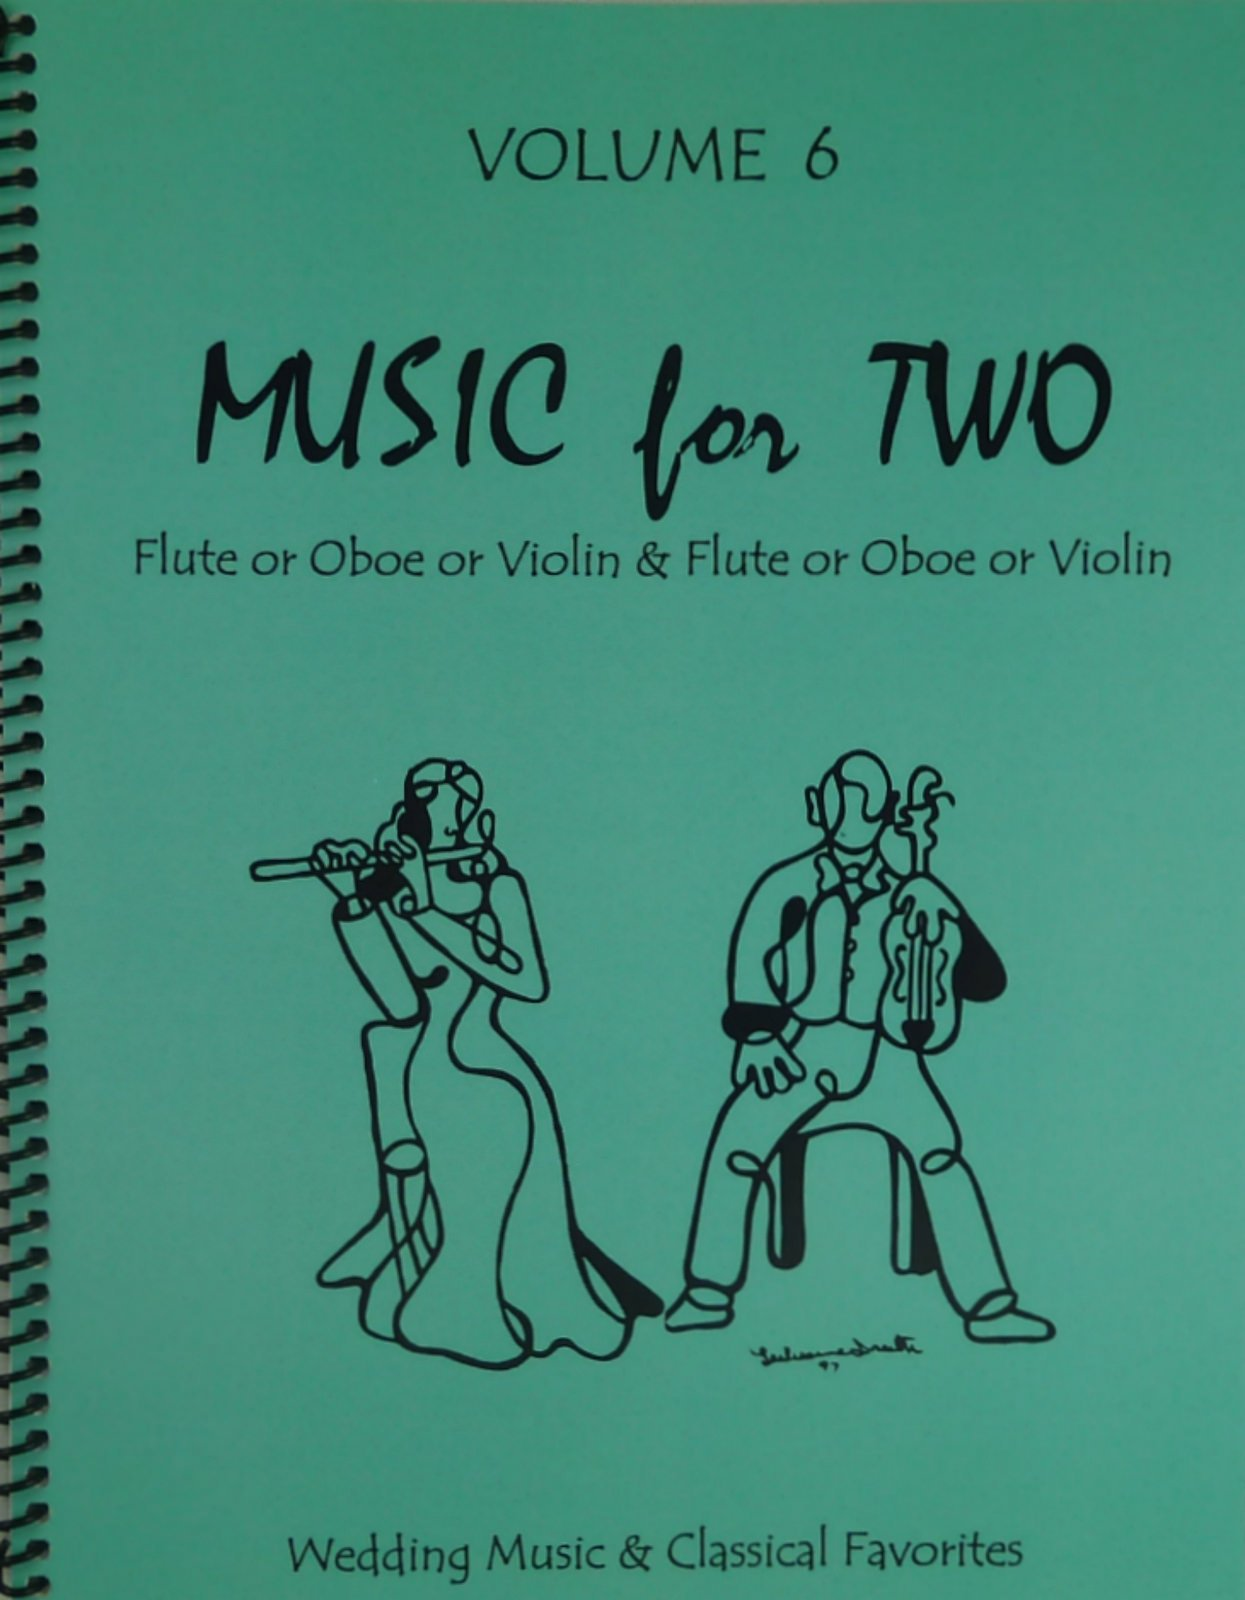 Music for Two, Volume 6 for Flute or Oboe or Violin & Flute or Oboe or Violin